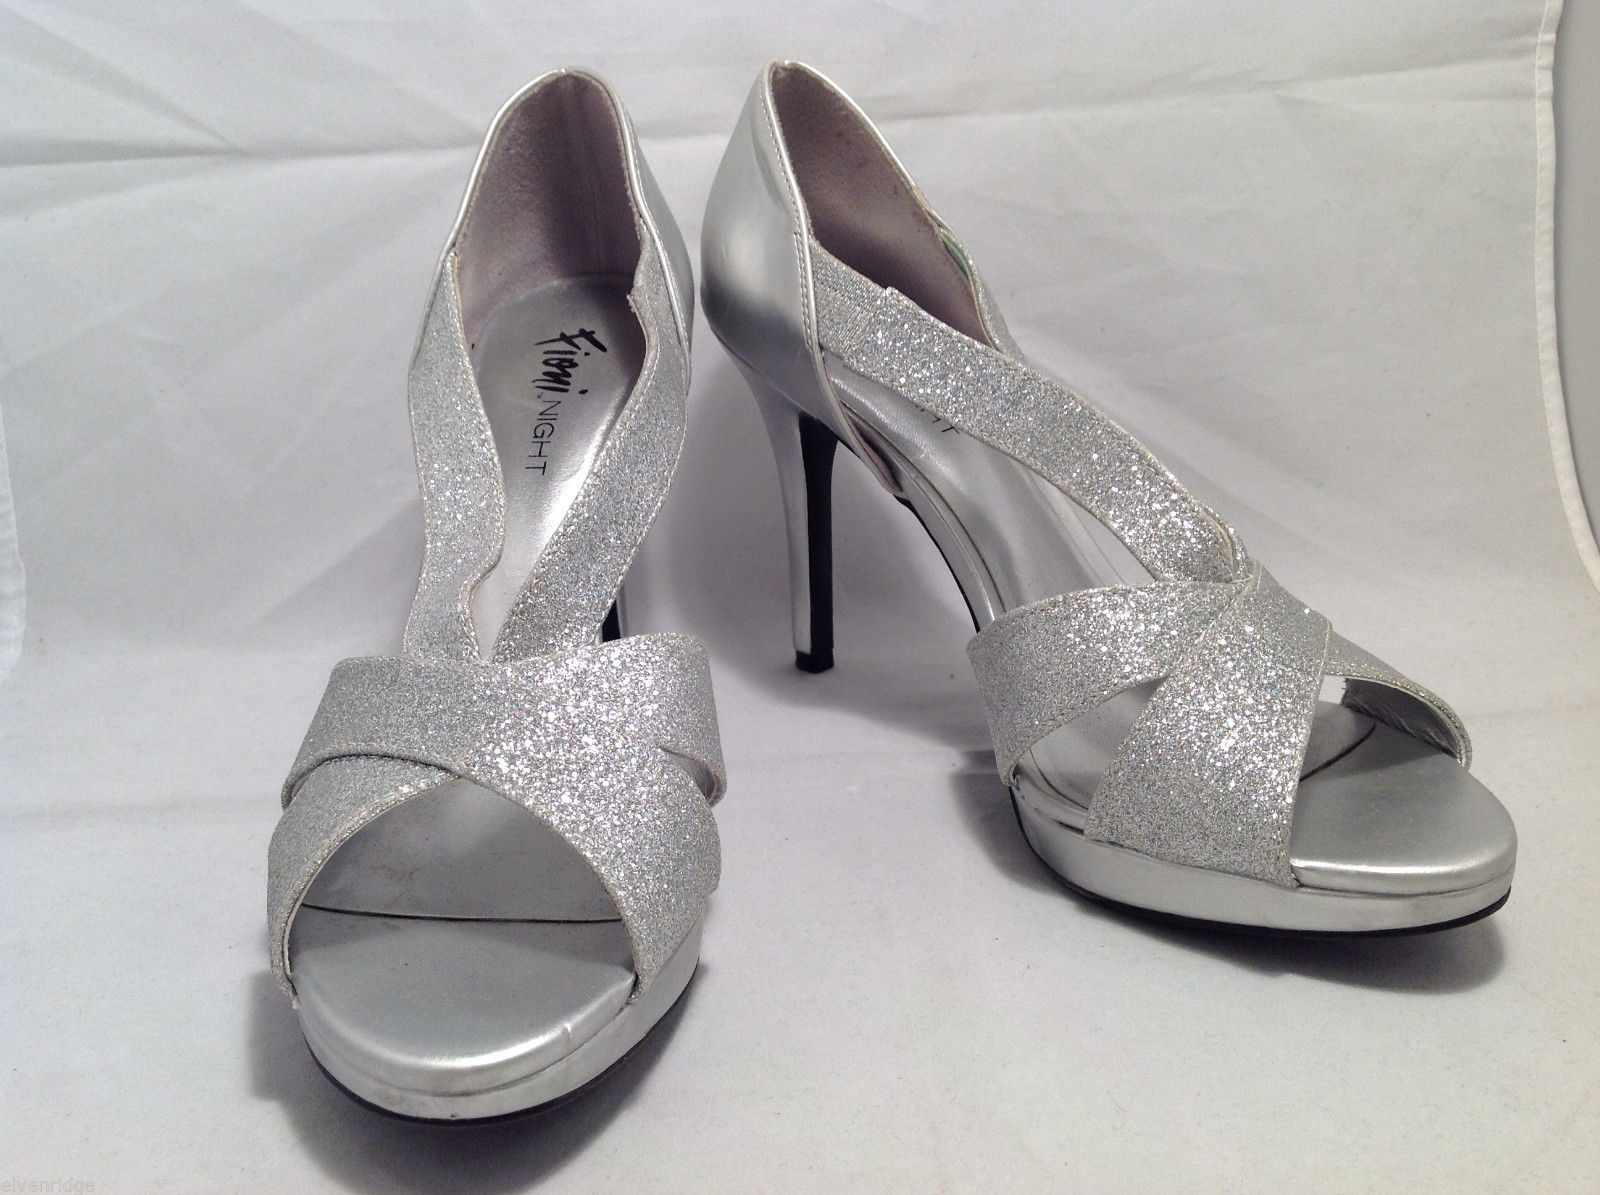 FIONI Night Womens Silver Sparkle High Heels Open Toe Pumps Sandals Size 8.5-9